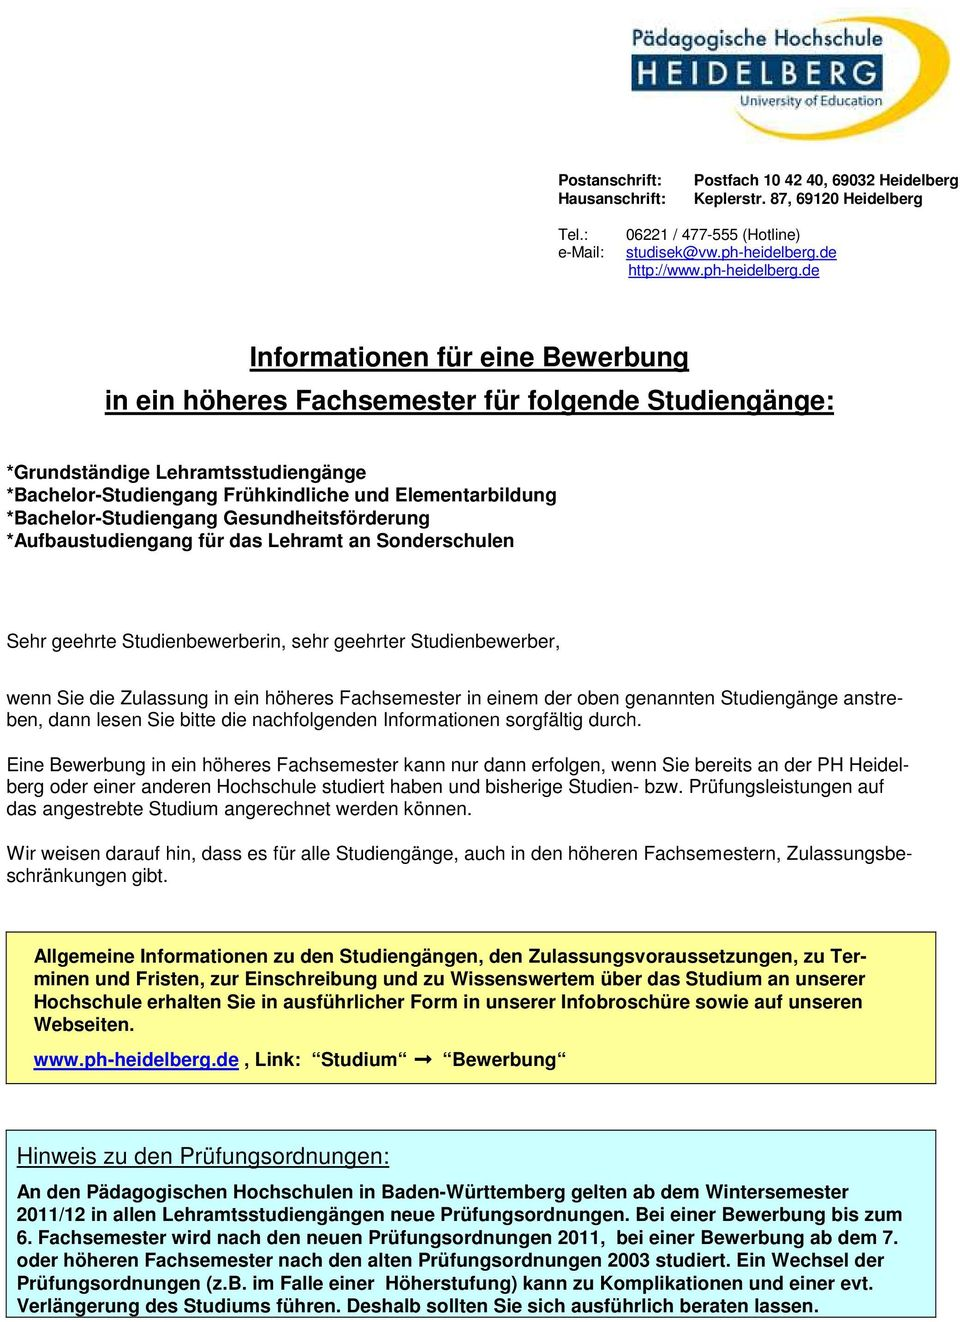 Bewerbung Ins Hohere Fachsemester Youtube